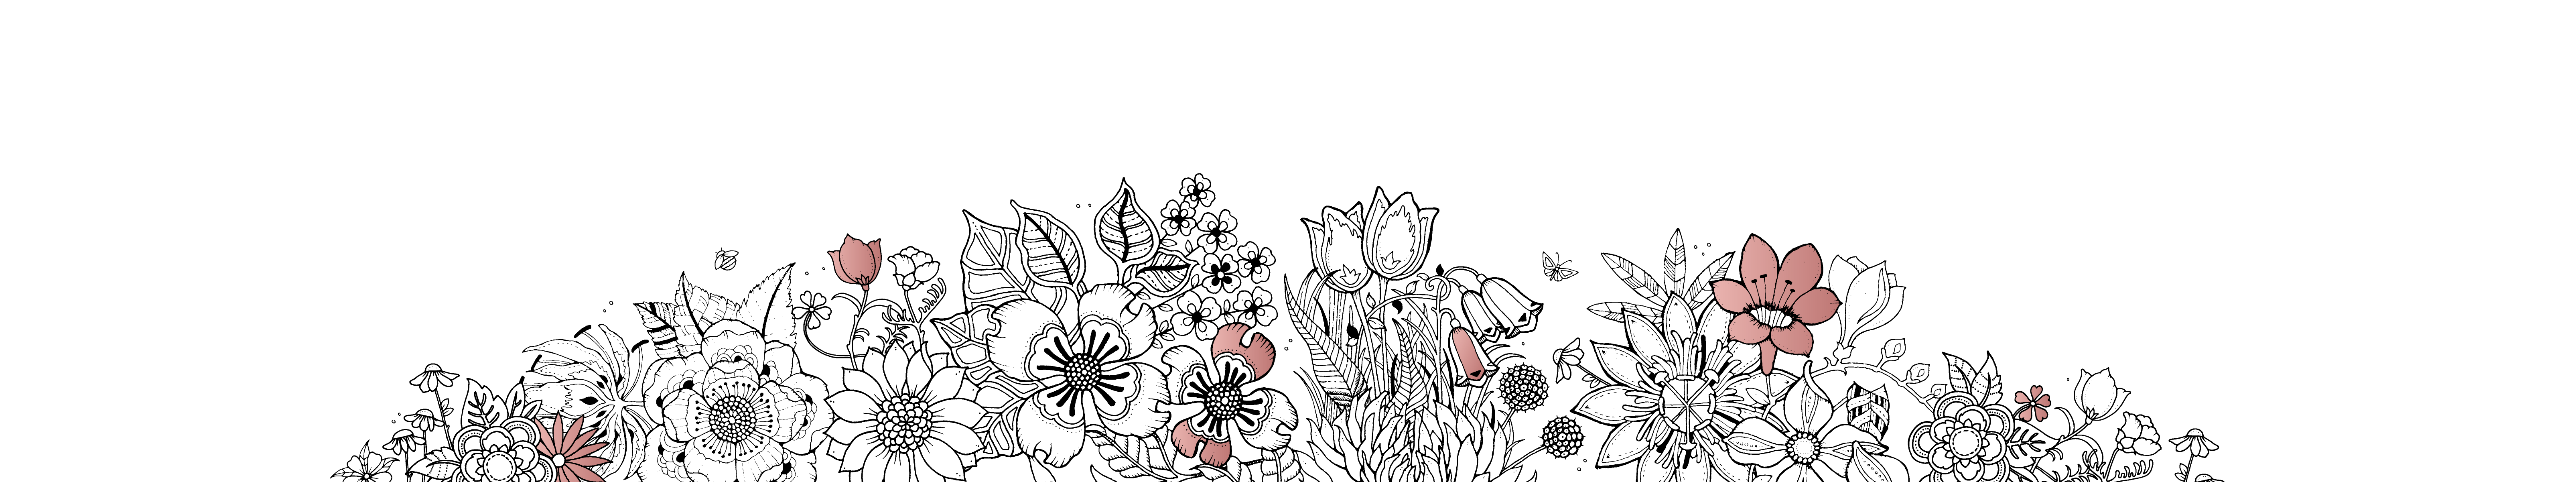 Challenger drawing colouring. Days of flowers